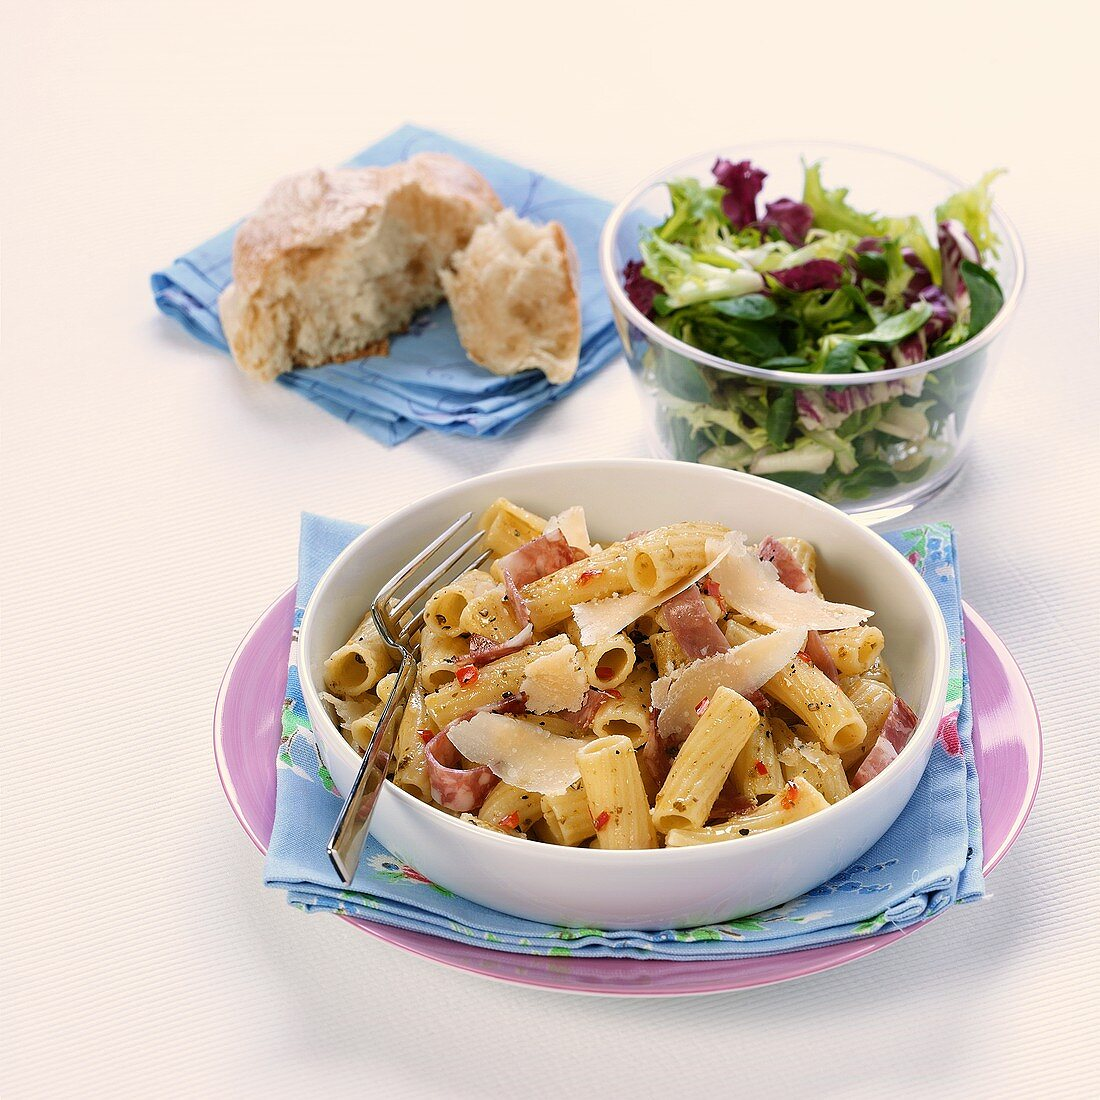 Pasta with ham and side salad